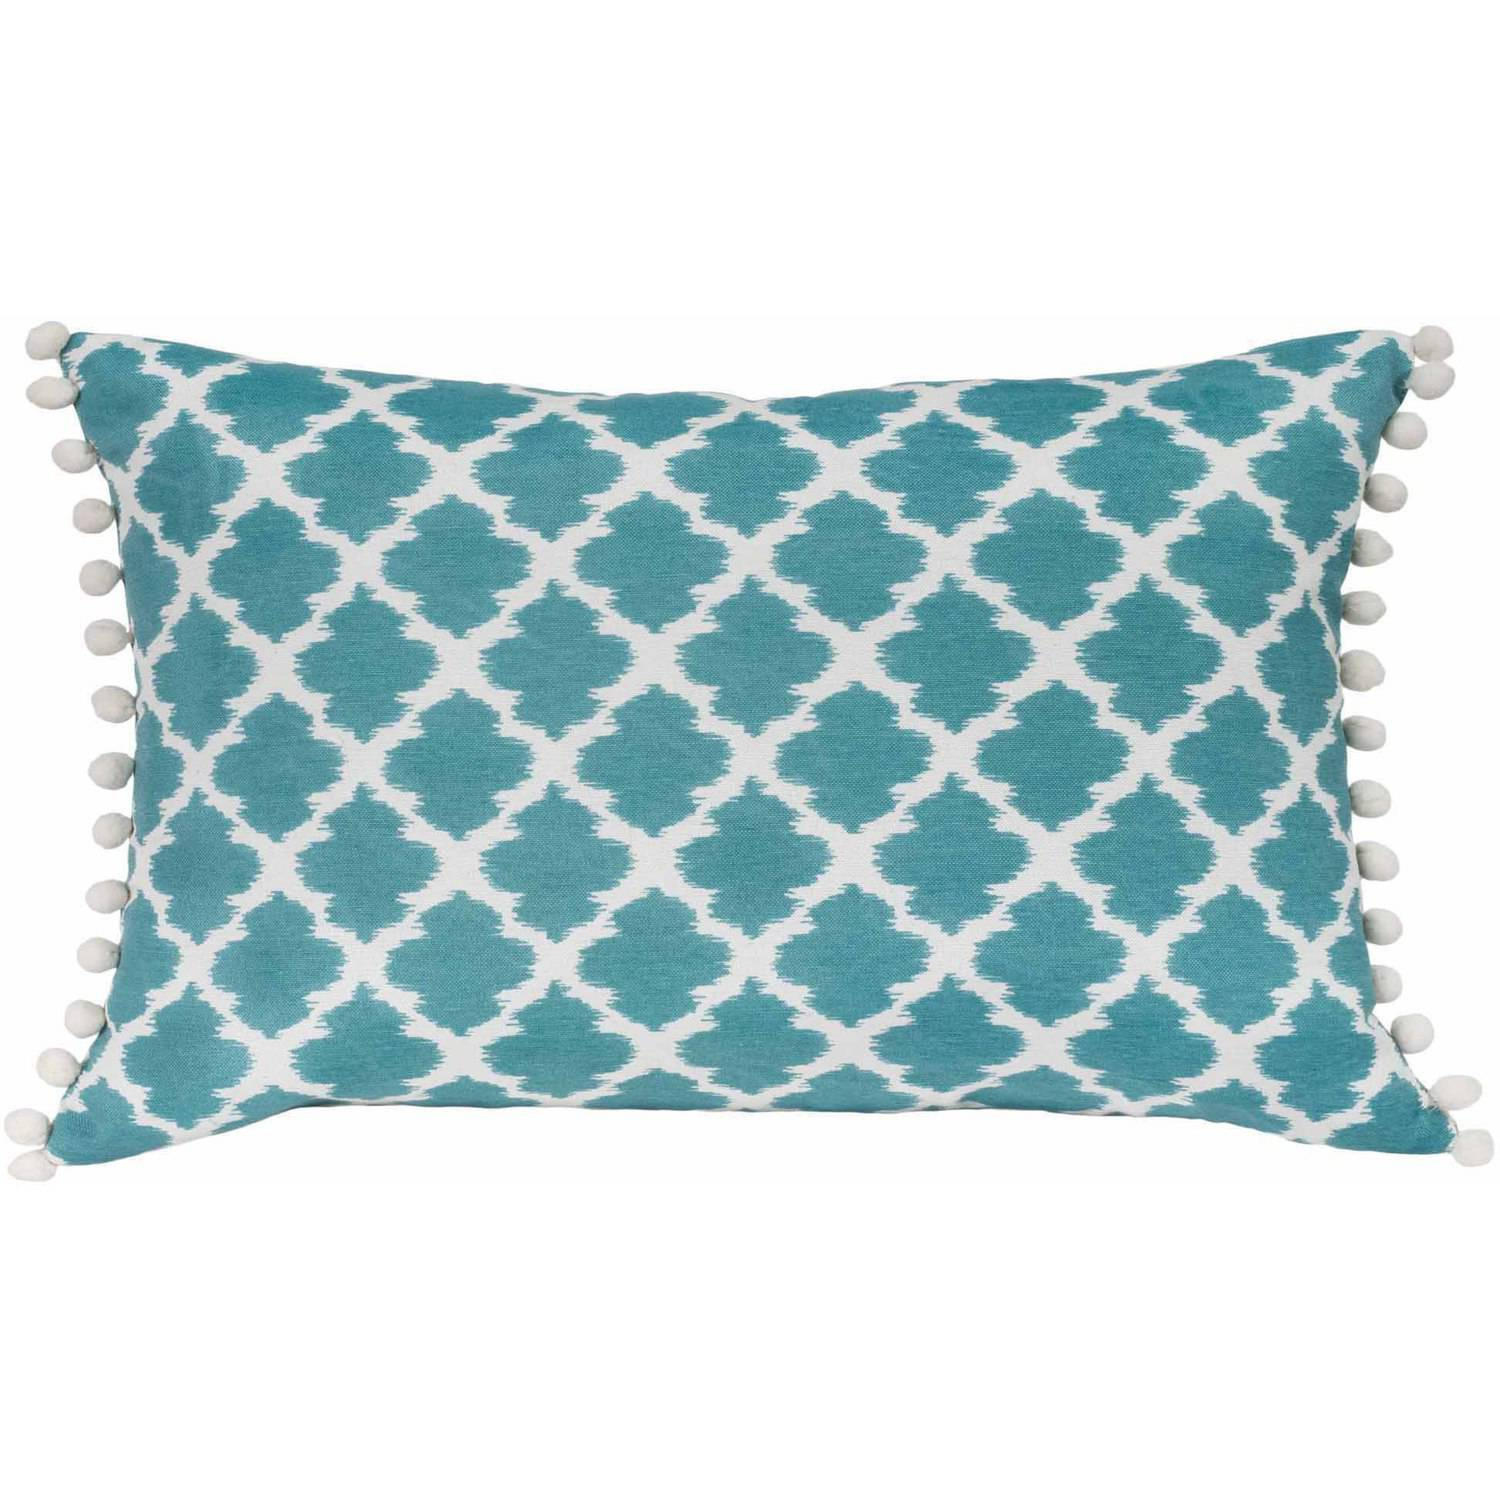 Better Homes and Gardens Tangier Aqua, Contemporary Ikat Oblong Pillow with Decorative Pompoms